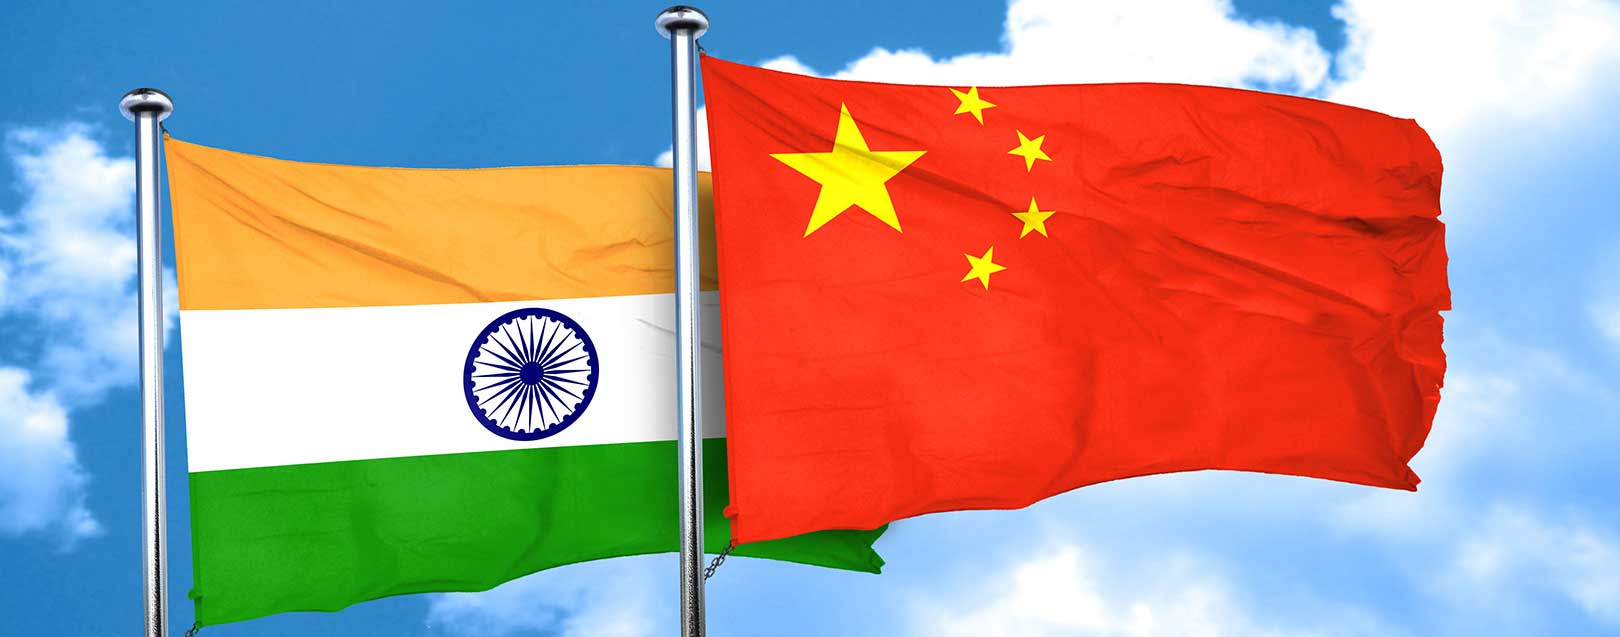 Chinese envoy proposes action plan to resolve Sino-India differences